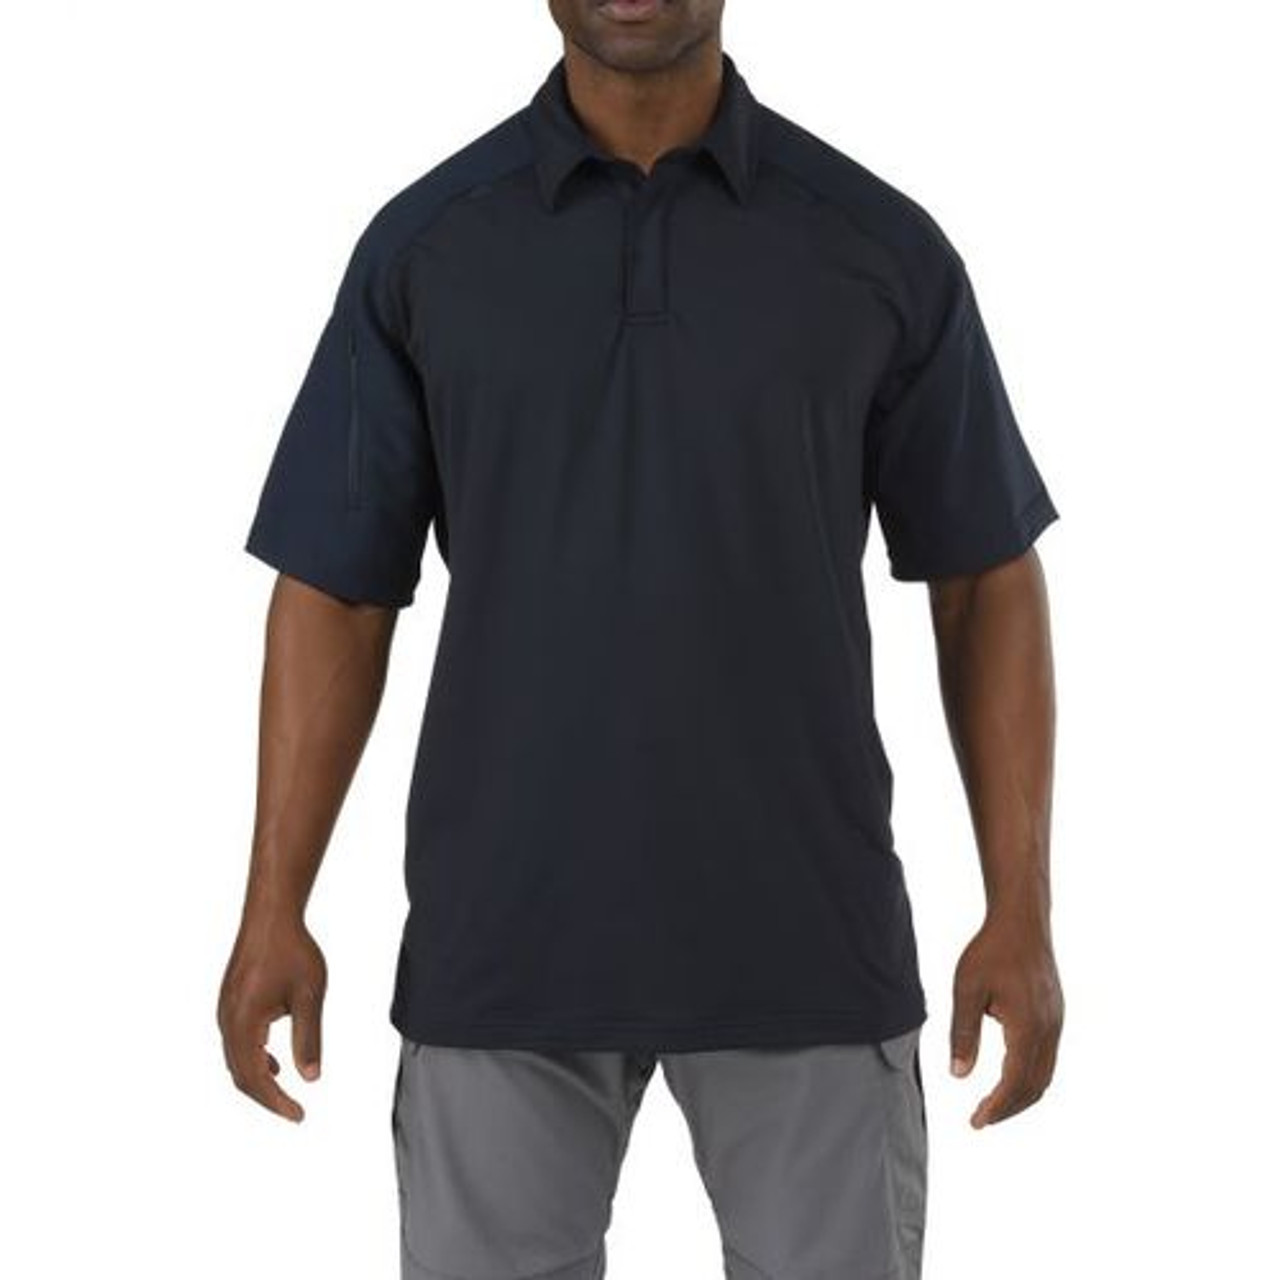 5.11 Tactical 41018 Rapid Response Short Sleeve Uniform or Casual Polo Shirt, Shoulder and Sterunm Mic Loops, Moisture Wicking Polyester Fabric, Sleeve Pocket, Available in Black, Silver Tan, TDU Green, Fire Med Blue, and Dark Navy